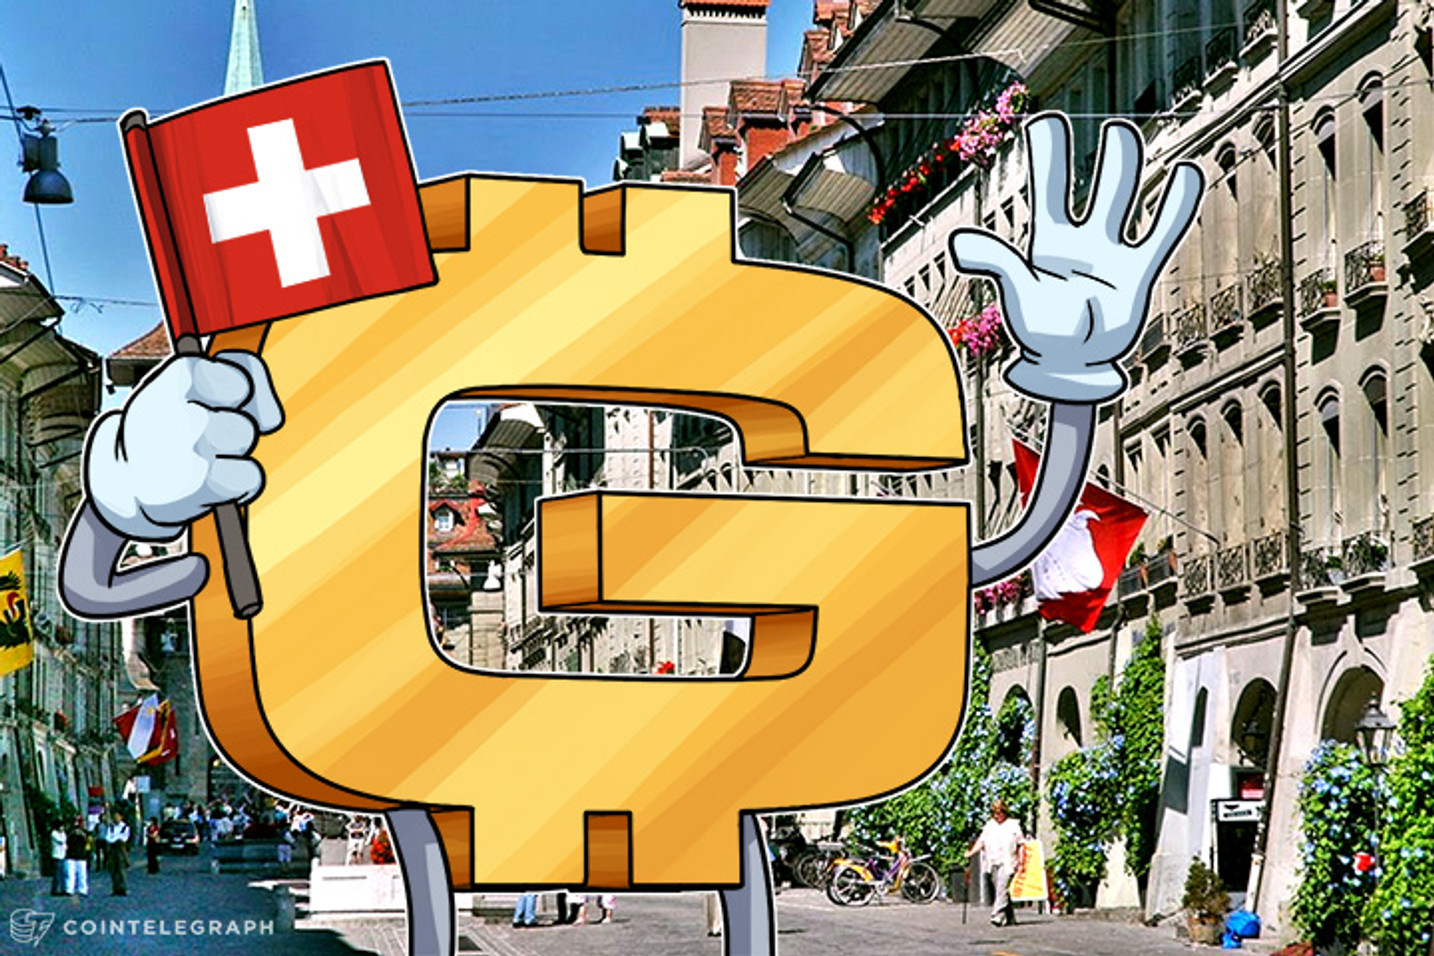 Leaving the Wild West: New Swiss Cryptocurrency Focuses on Usability and Regulatory Compliance